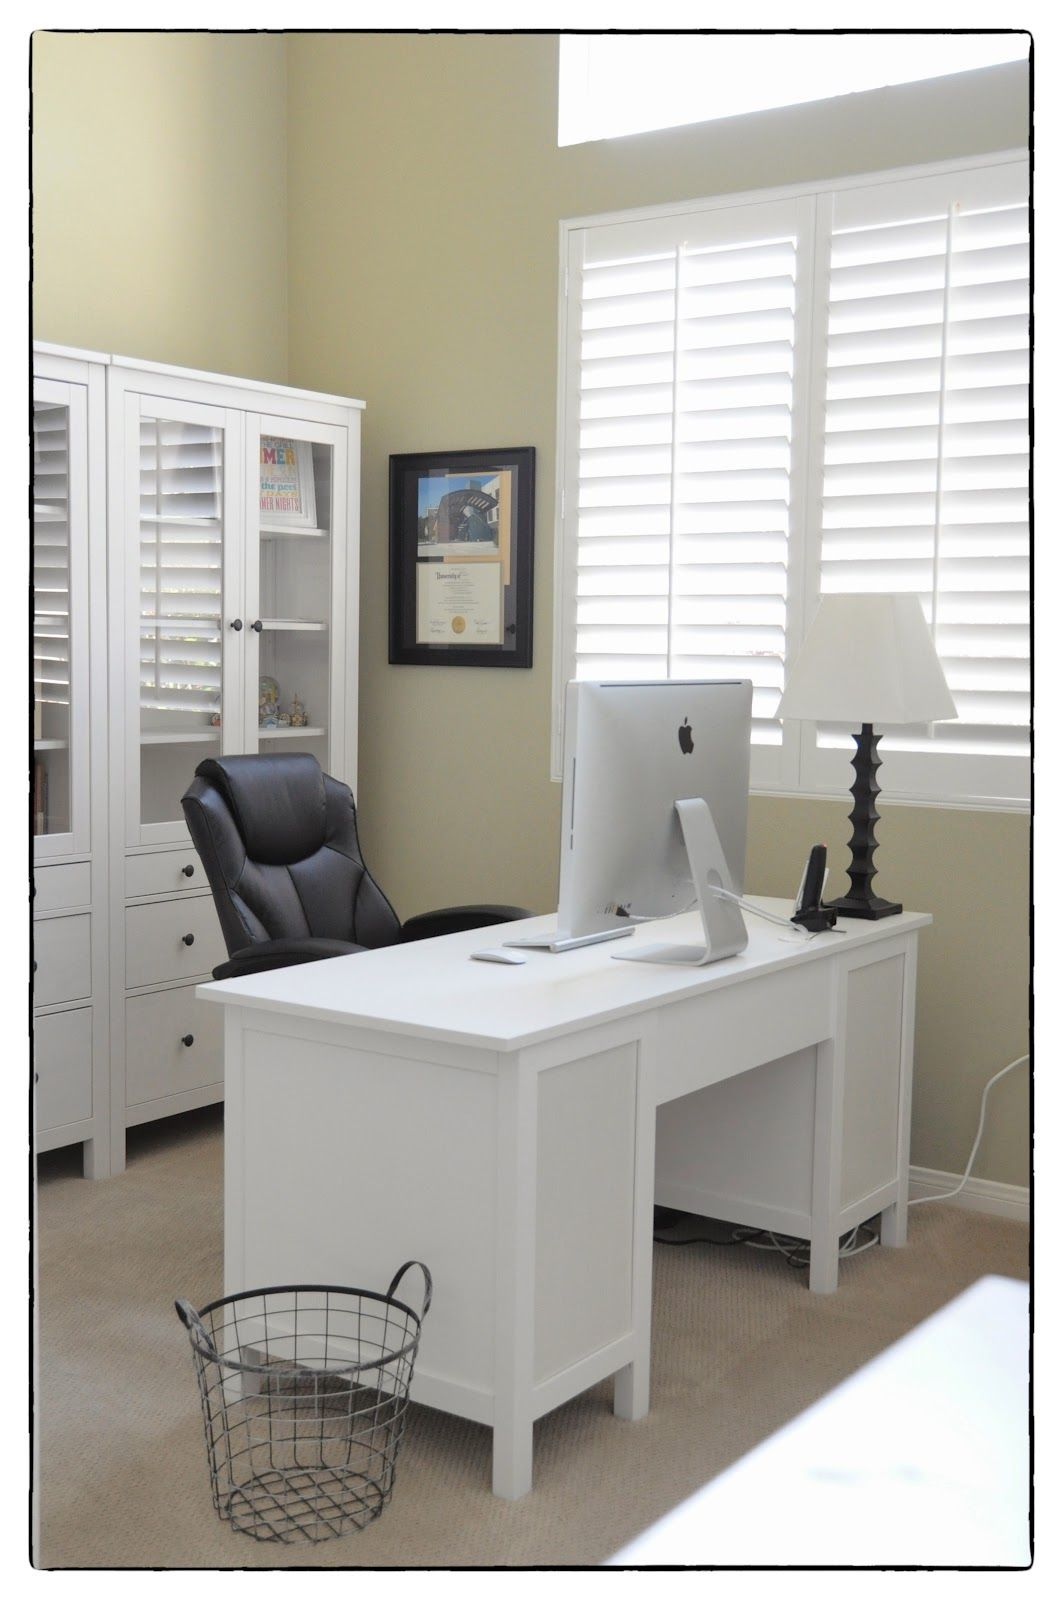 Ikeas Hemnes Cabinets And Office Perfectness Except The Trash Can Would Get Trash And Not Be Cute